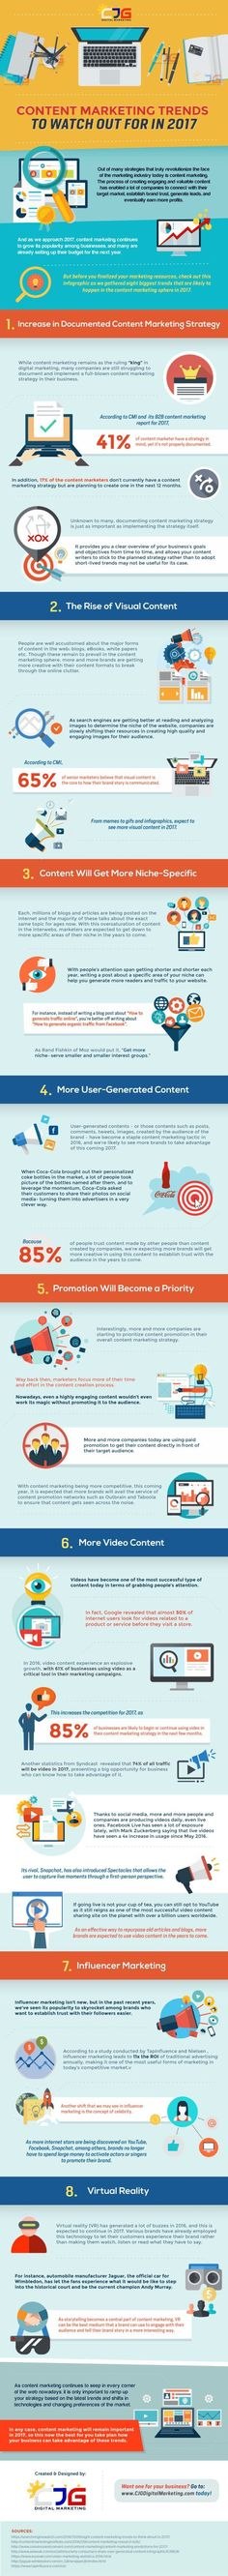 What's hot in the world of marketing? Check out this infographic that outlines Content Marketing Trends for 2017.